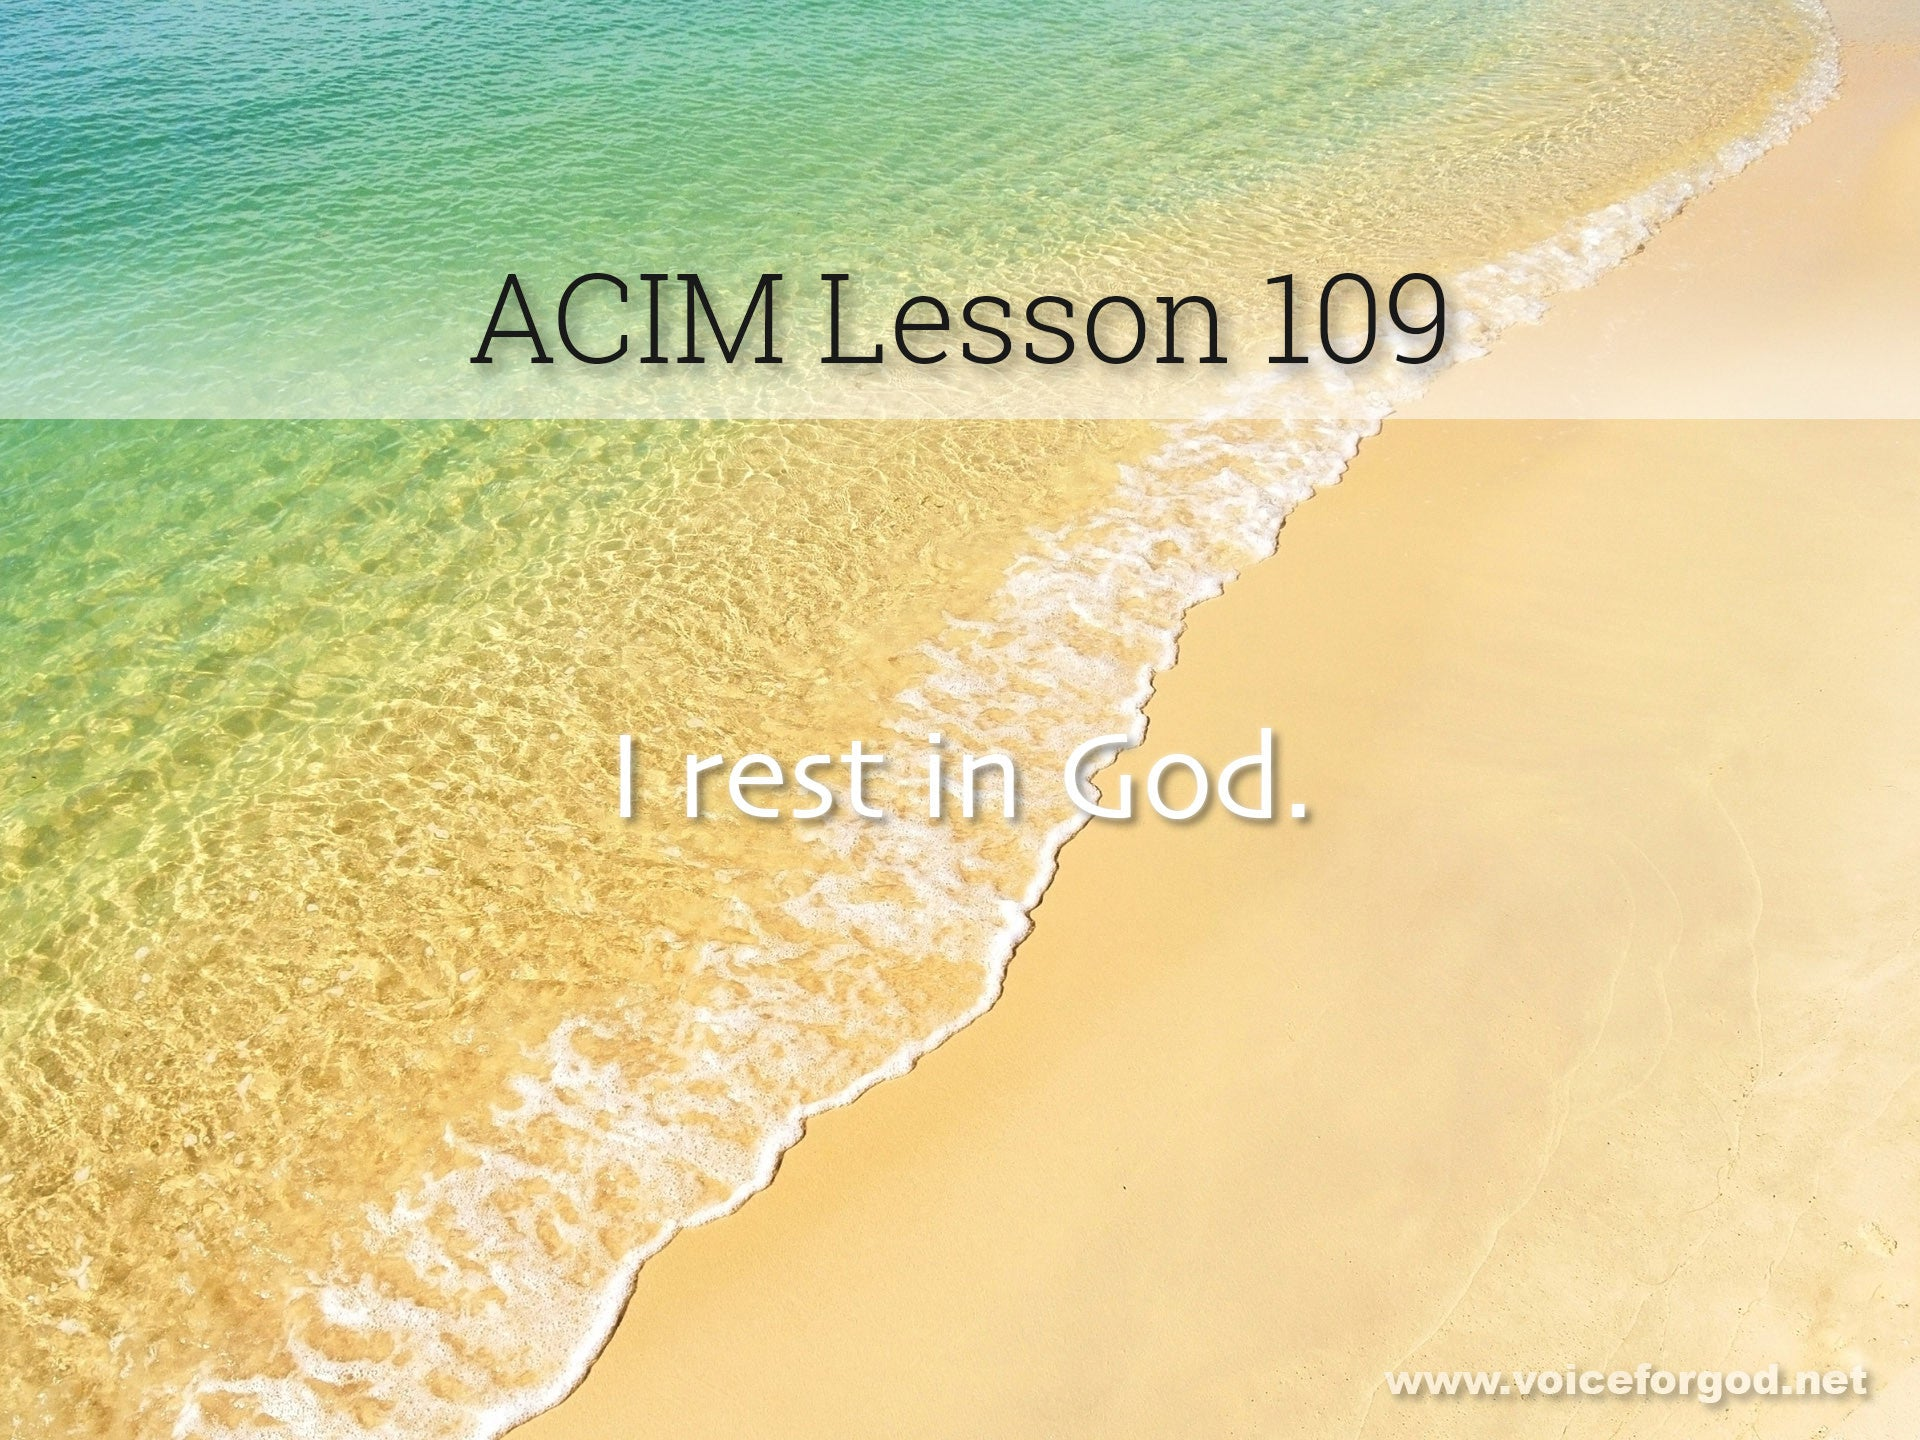 ACIM Lesson 109 - A Course in Miracles Workbook Lesson 109